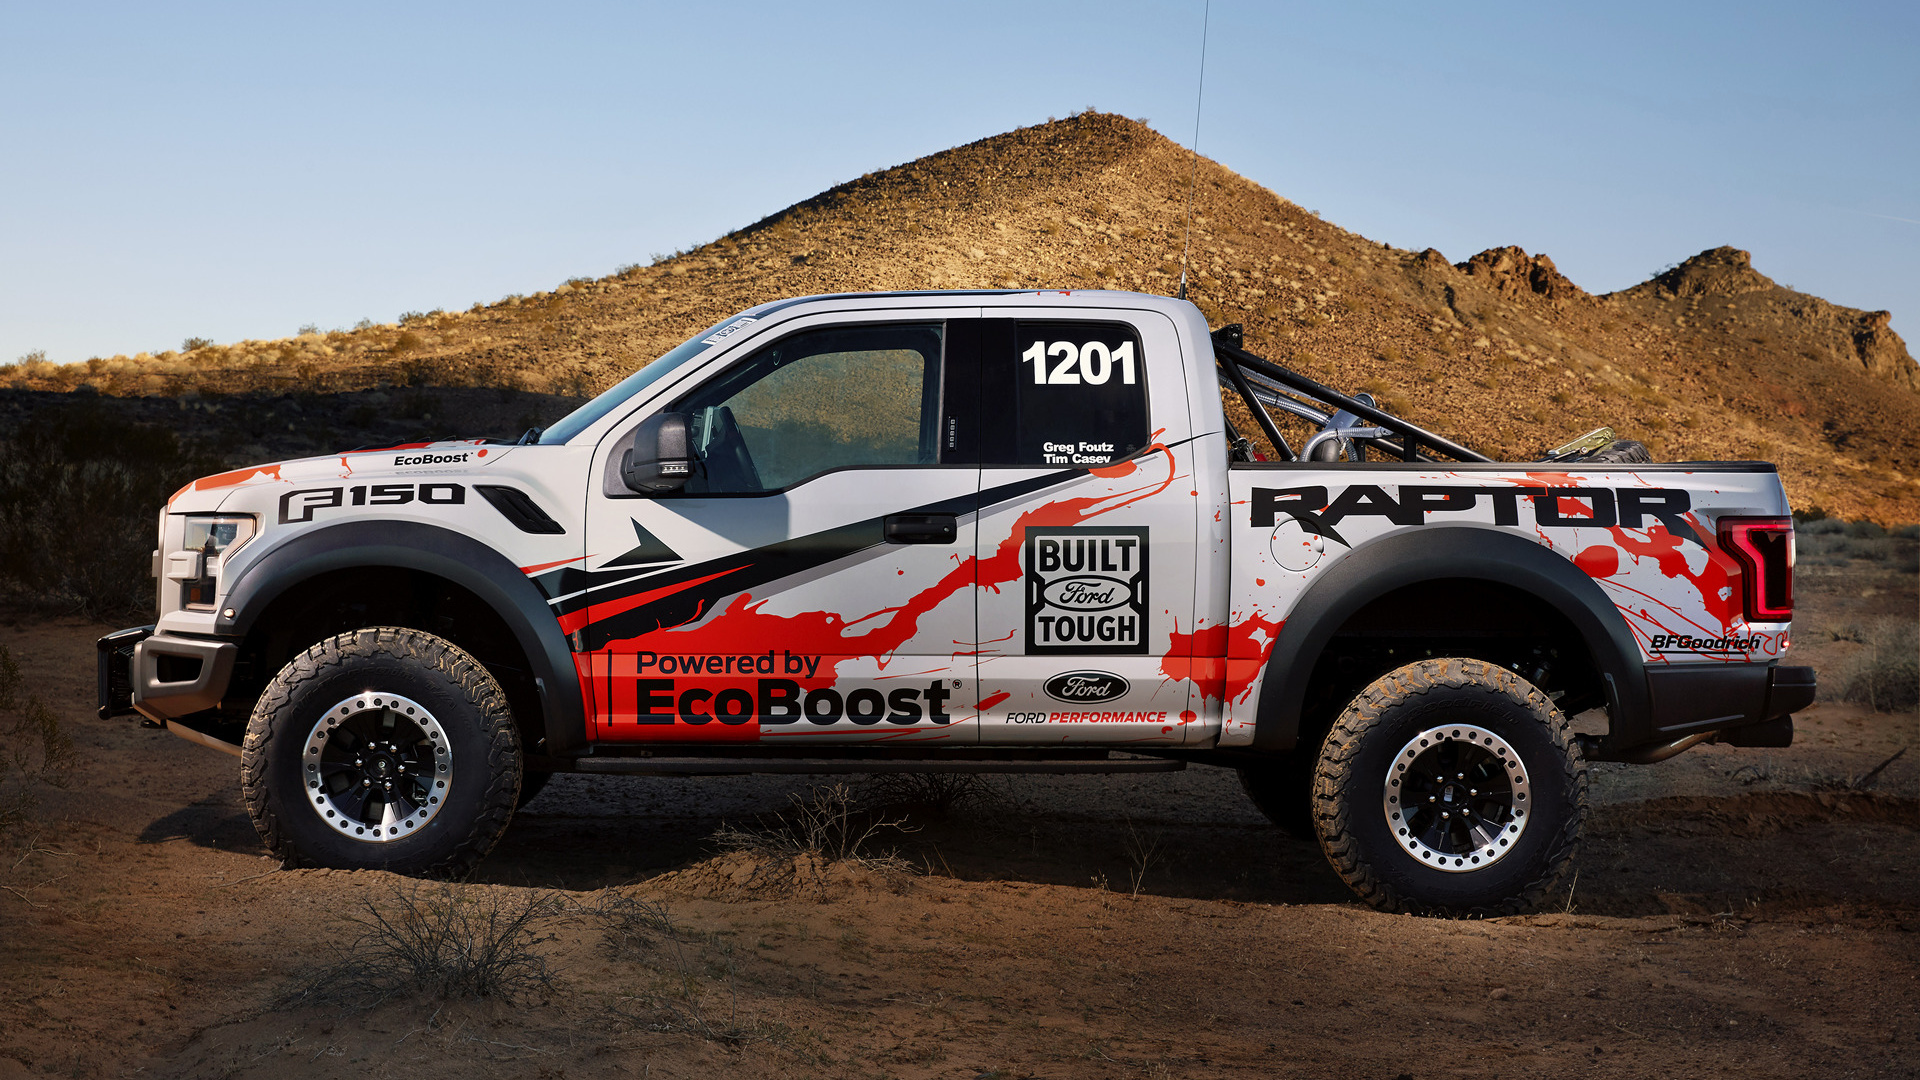 Ford F150 King Ranch >> 2017 Ford F-150 Raptor Race Truck - Wallpapers and HD Images | Car Pixel